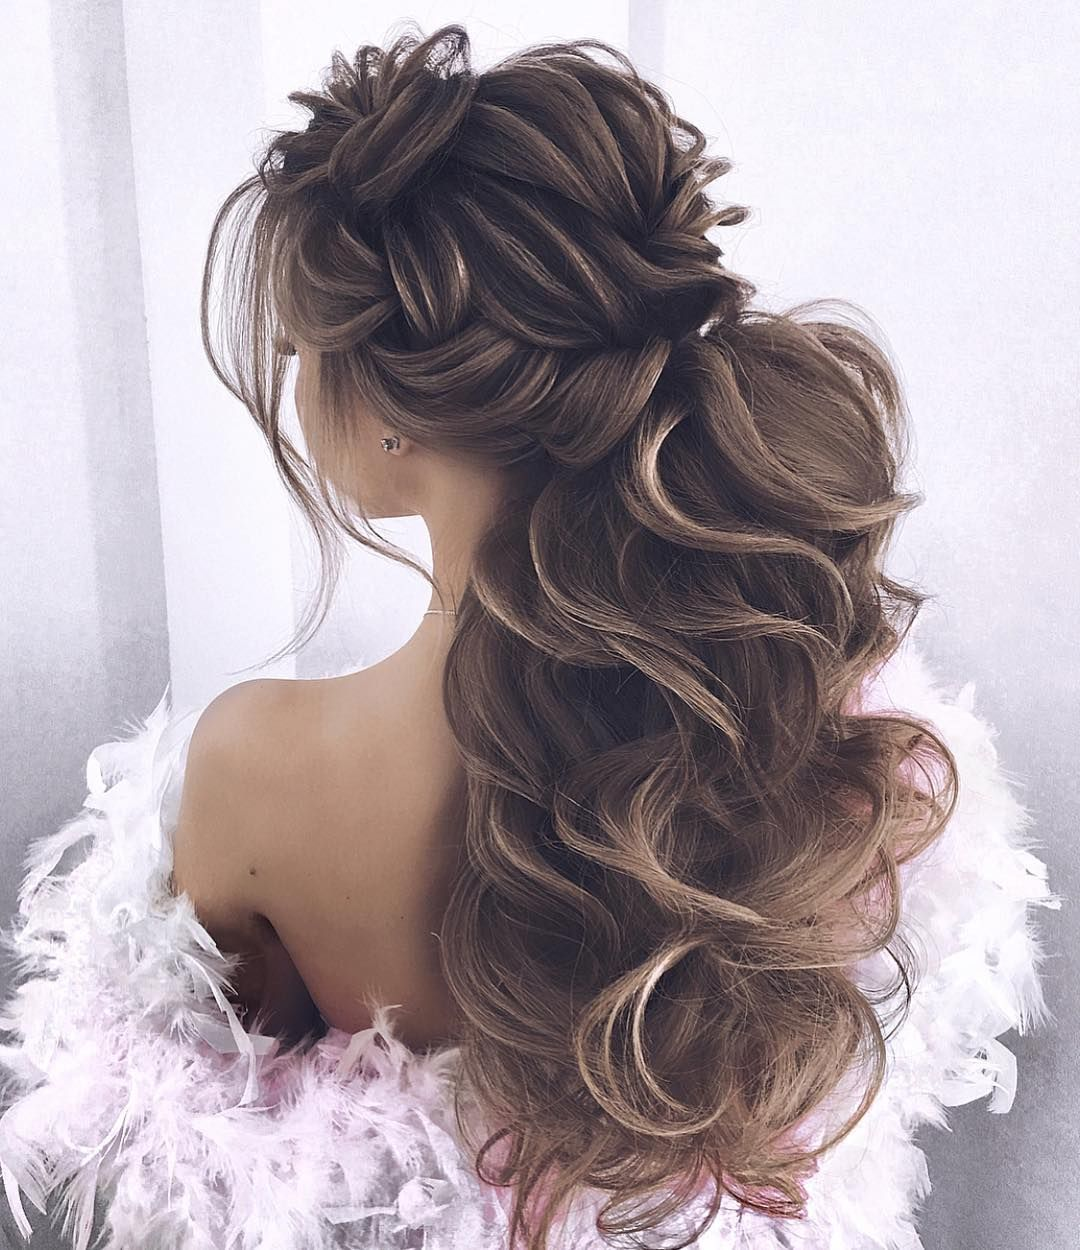 Beautiful Prom Hairstyles That'll Steal the Night